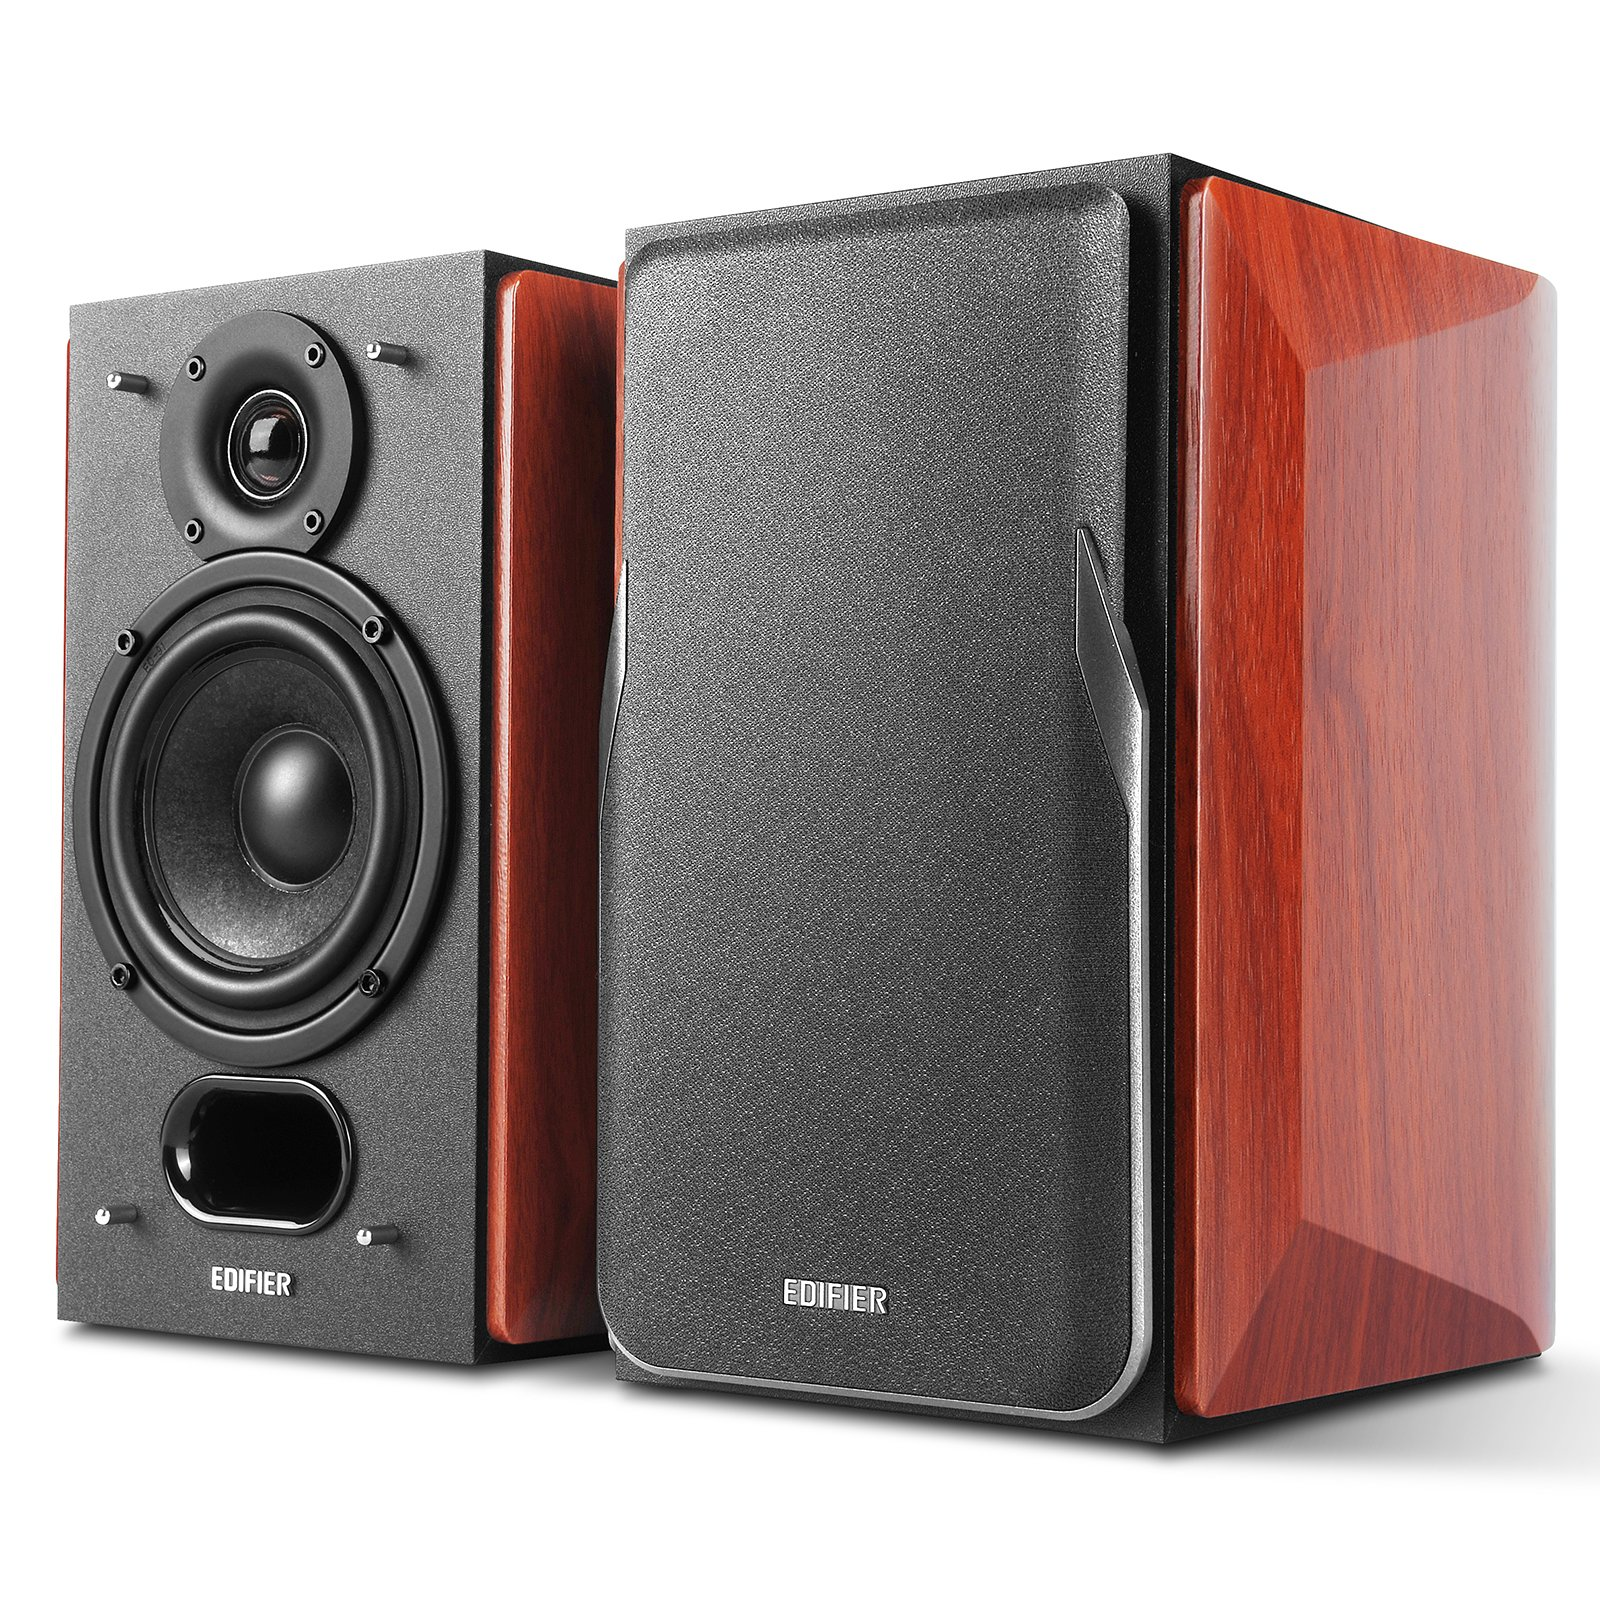 Parlante : Edifier P17 Passive Bookshelf Speakers - 2-way..